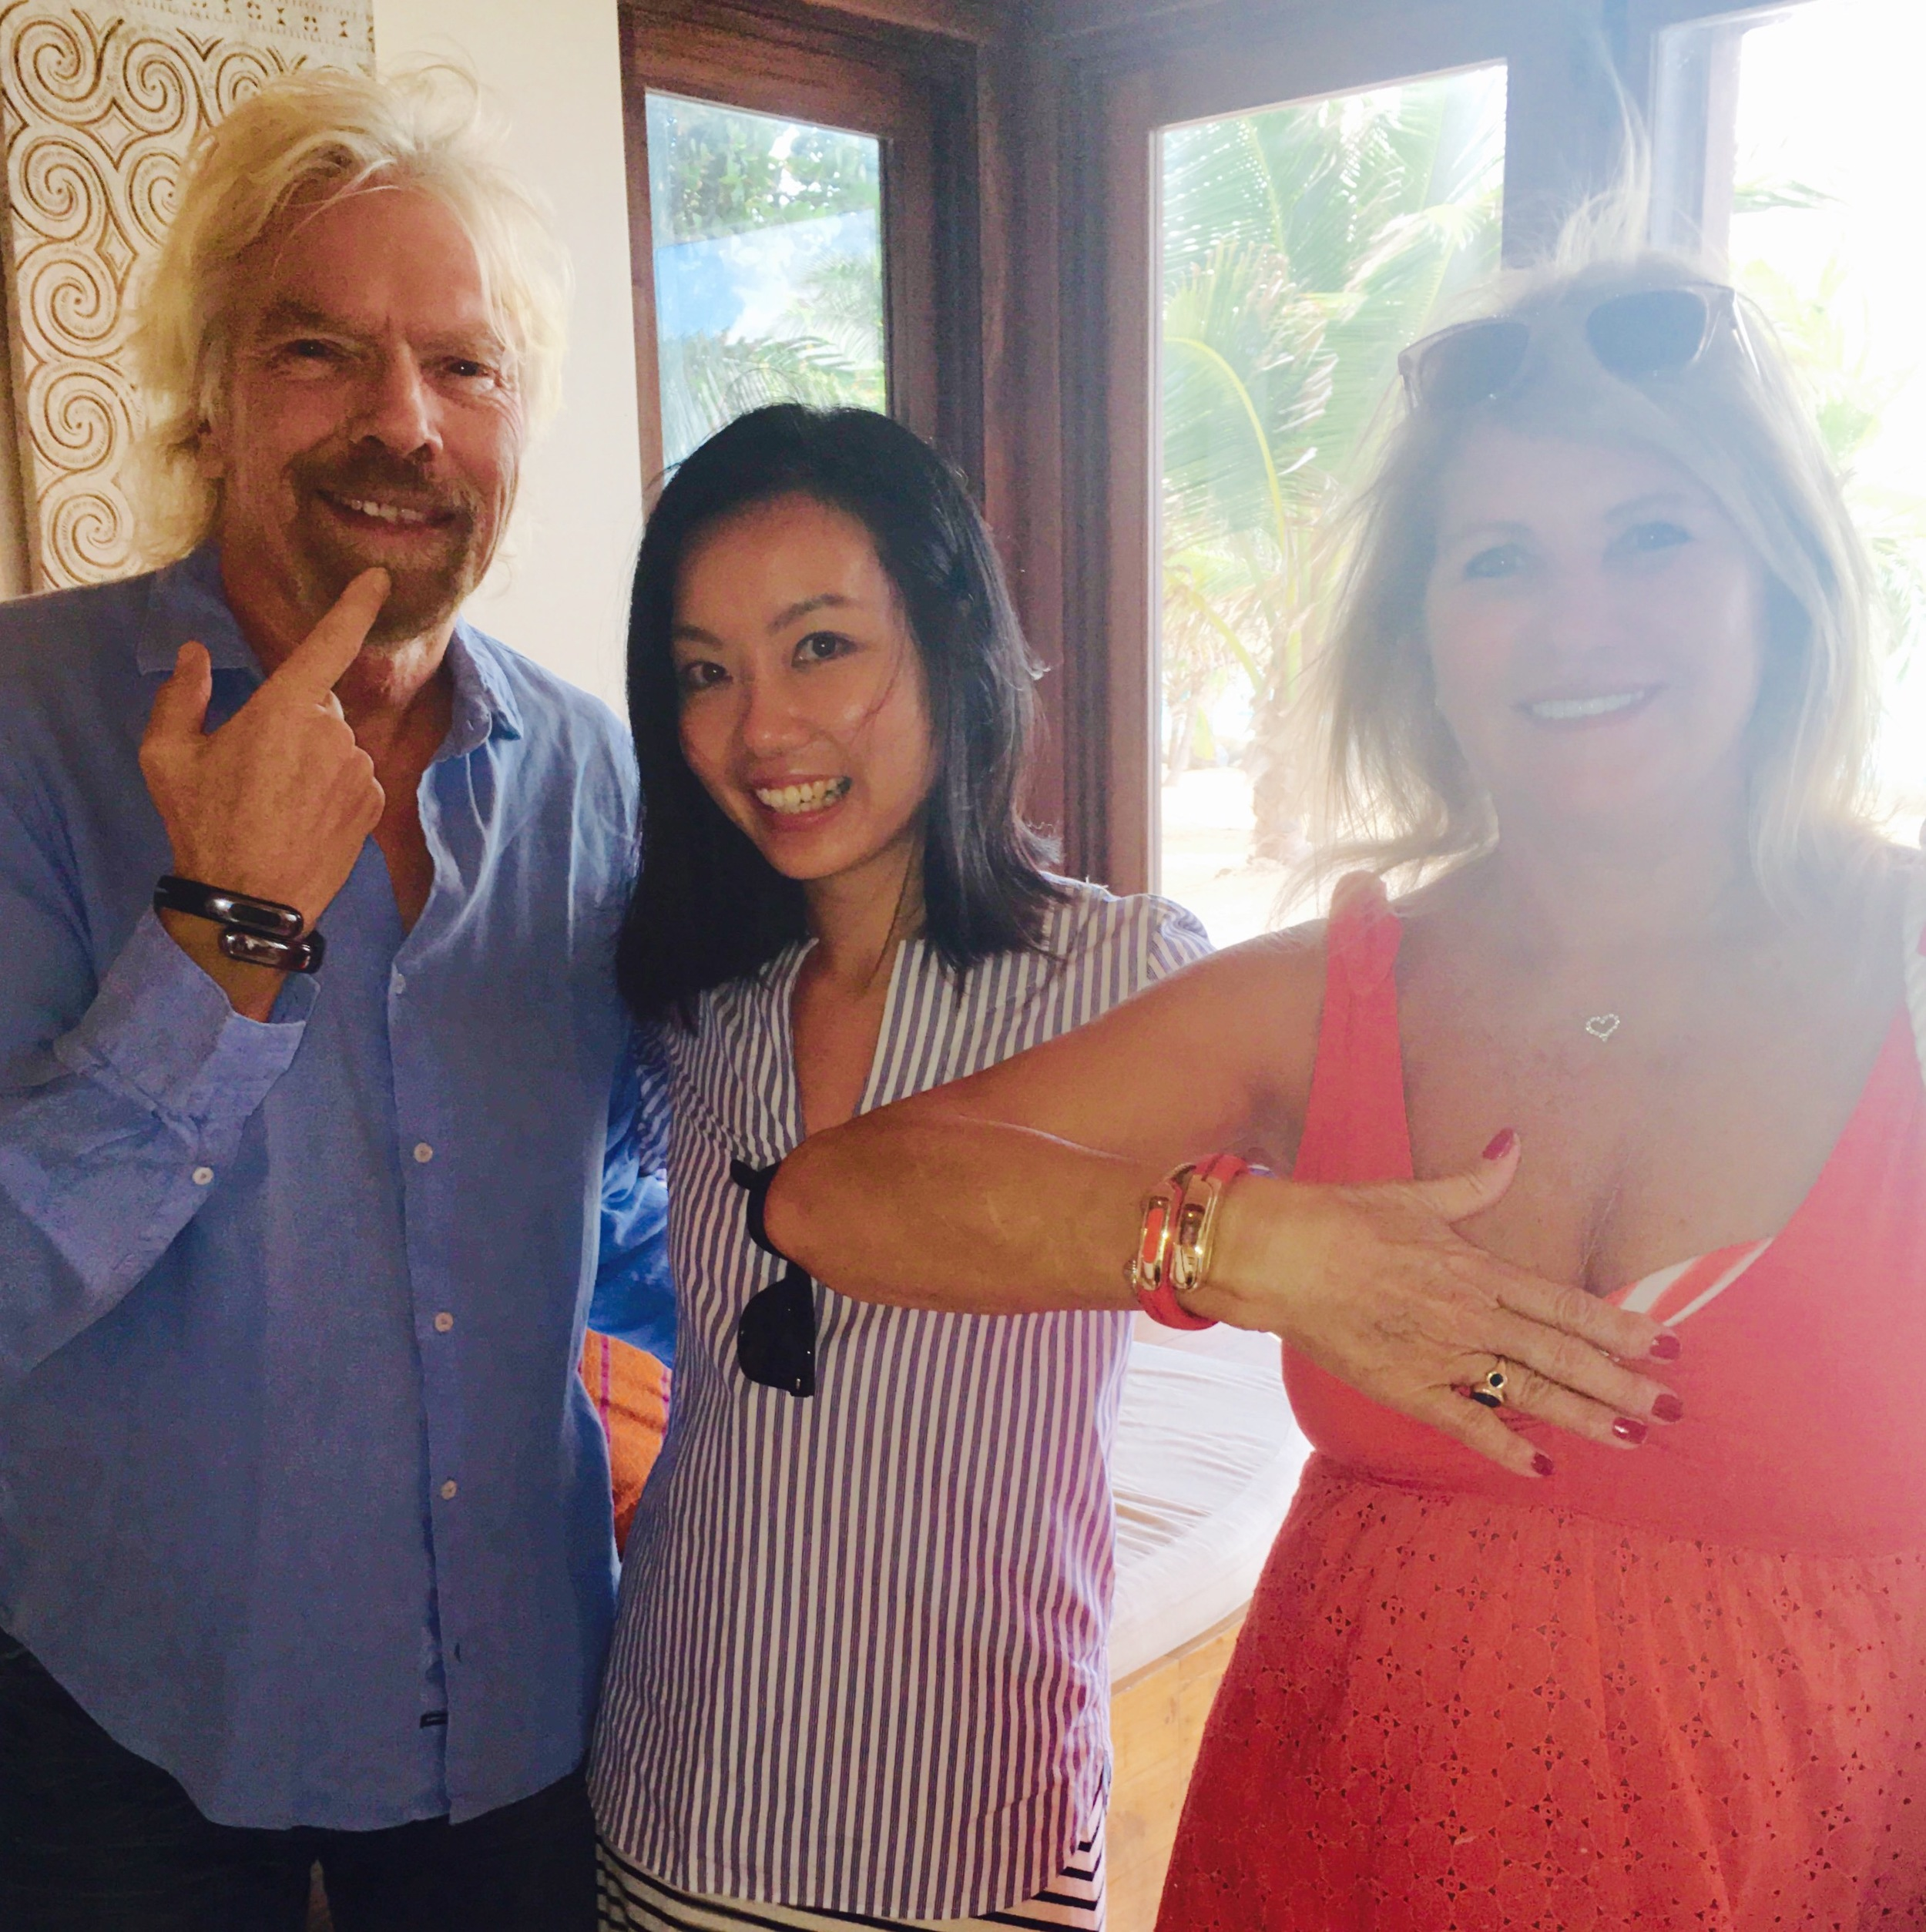 Sir Richard Branson and His Wife Joan Experiencing the Helix Cuff with Angela Pan